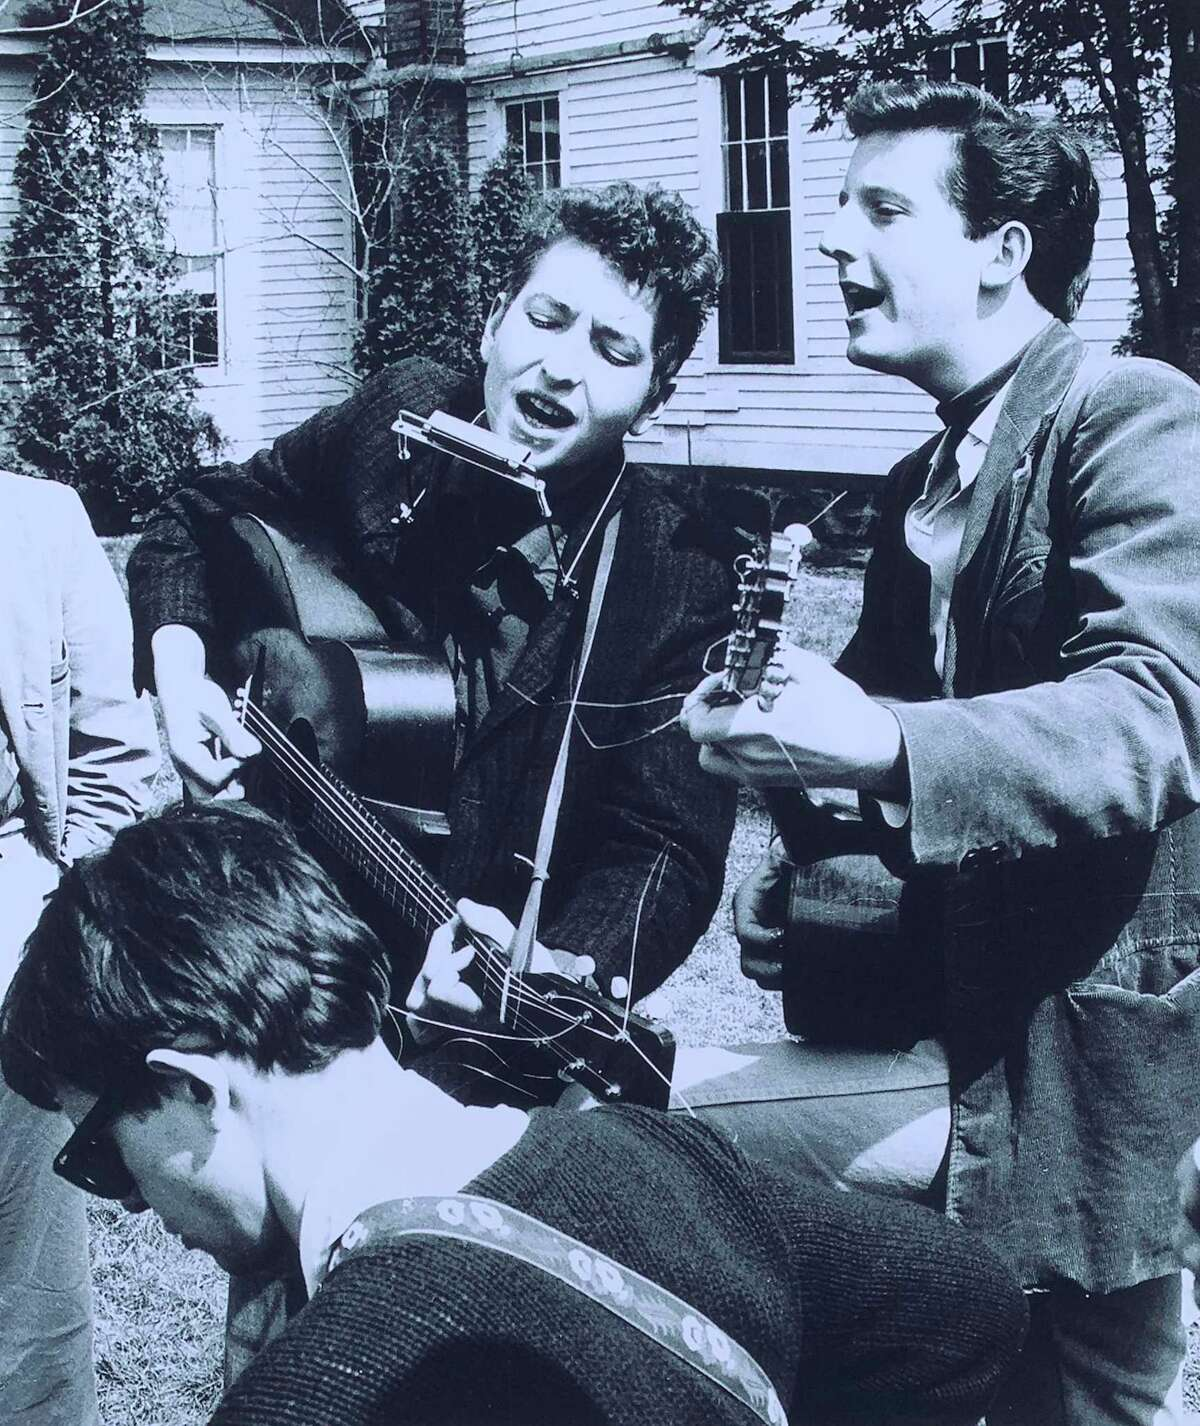 Bob Dylan, then 19, center, jams with Mark Spoelstra, right, and Bob Neuwirth, lower left, at the 1961 Indian Neck Folk Festival on May 6, 1961. The photo was taken by Stephen H. Fenerjian, a then-27-year-old Cambridge, Mass., photographer. Fernerjian now is 87 and living in Sharon, Mass.